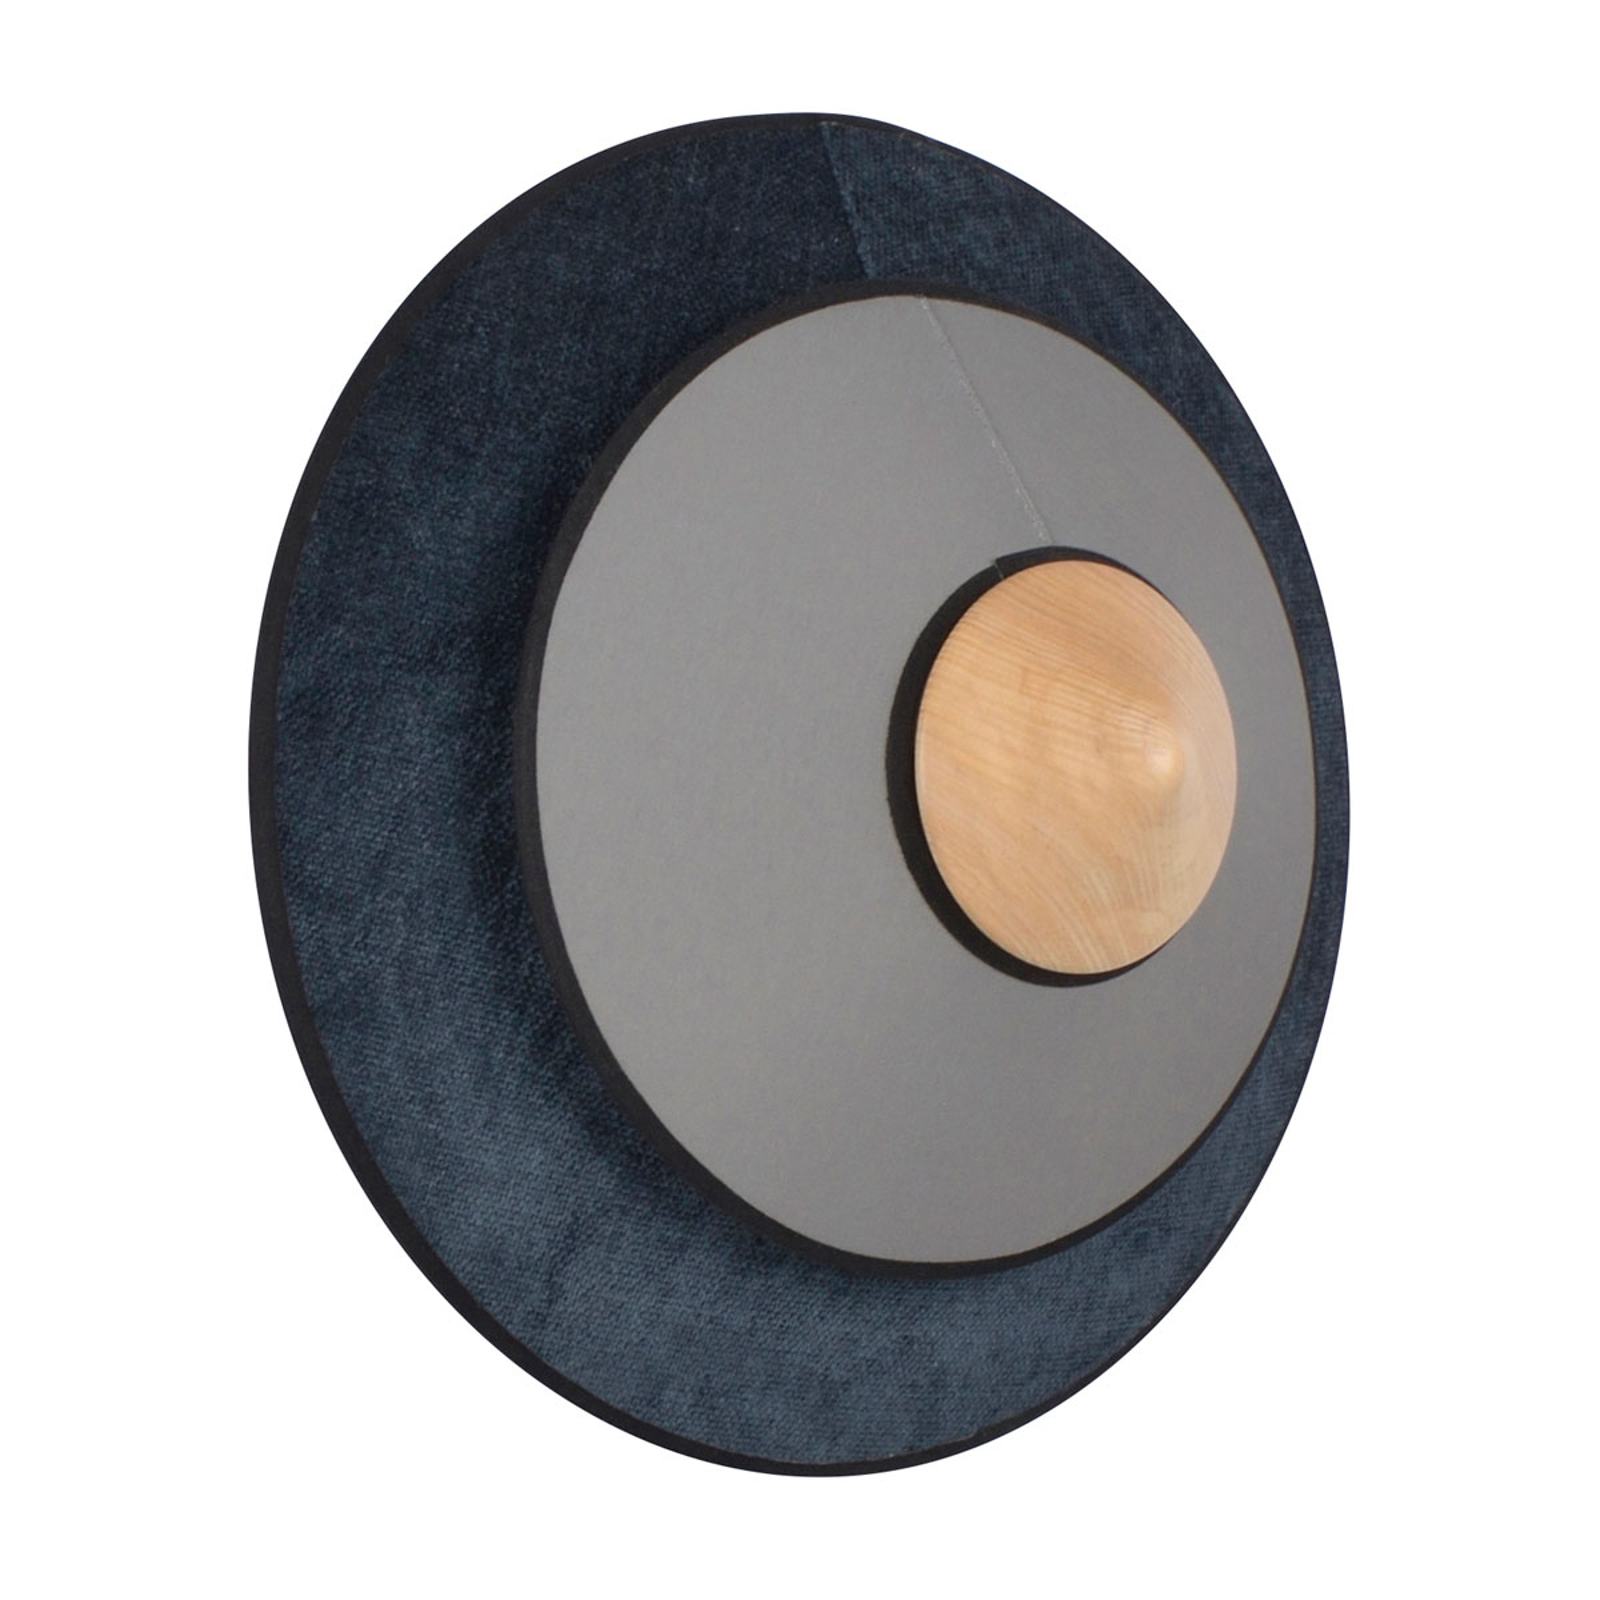 Forestier Cymbal S applique LED, blu scuro